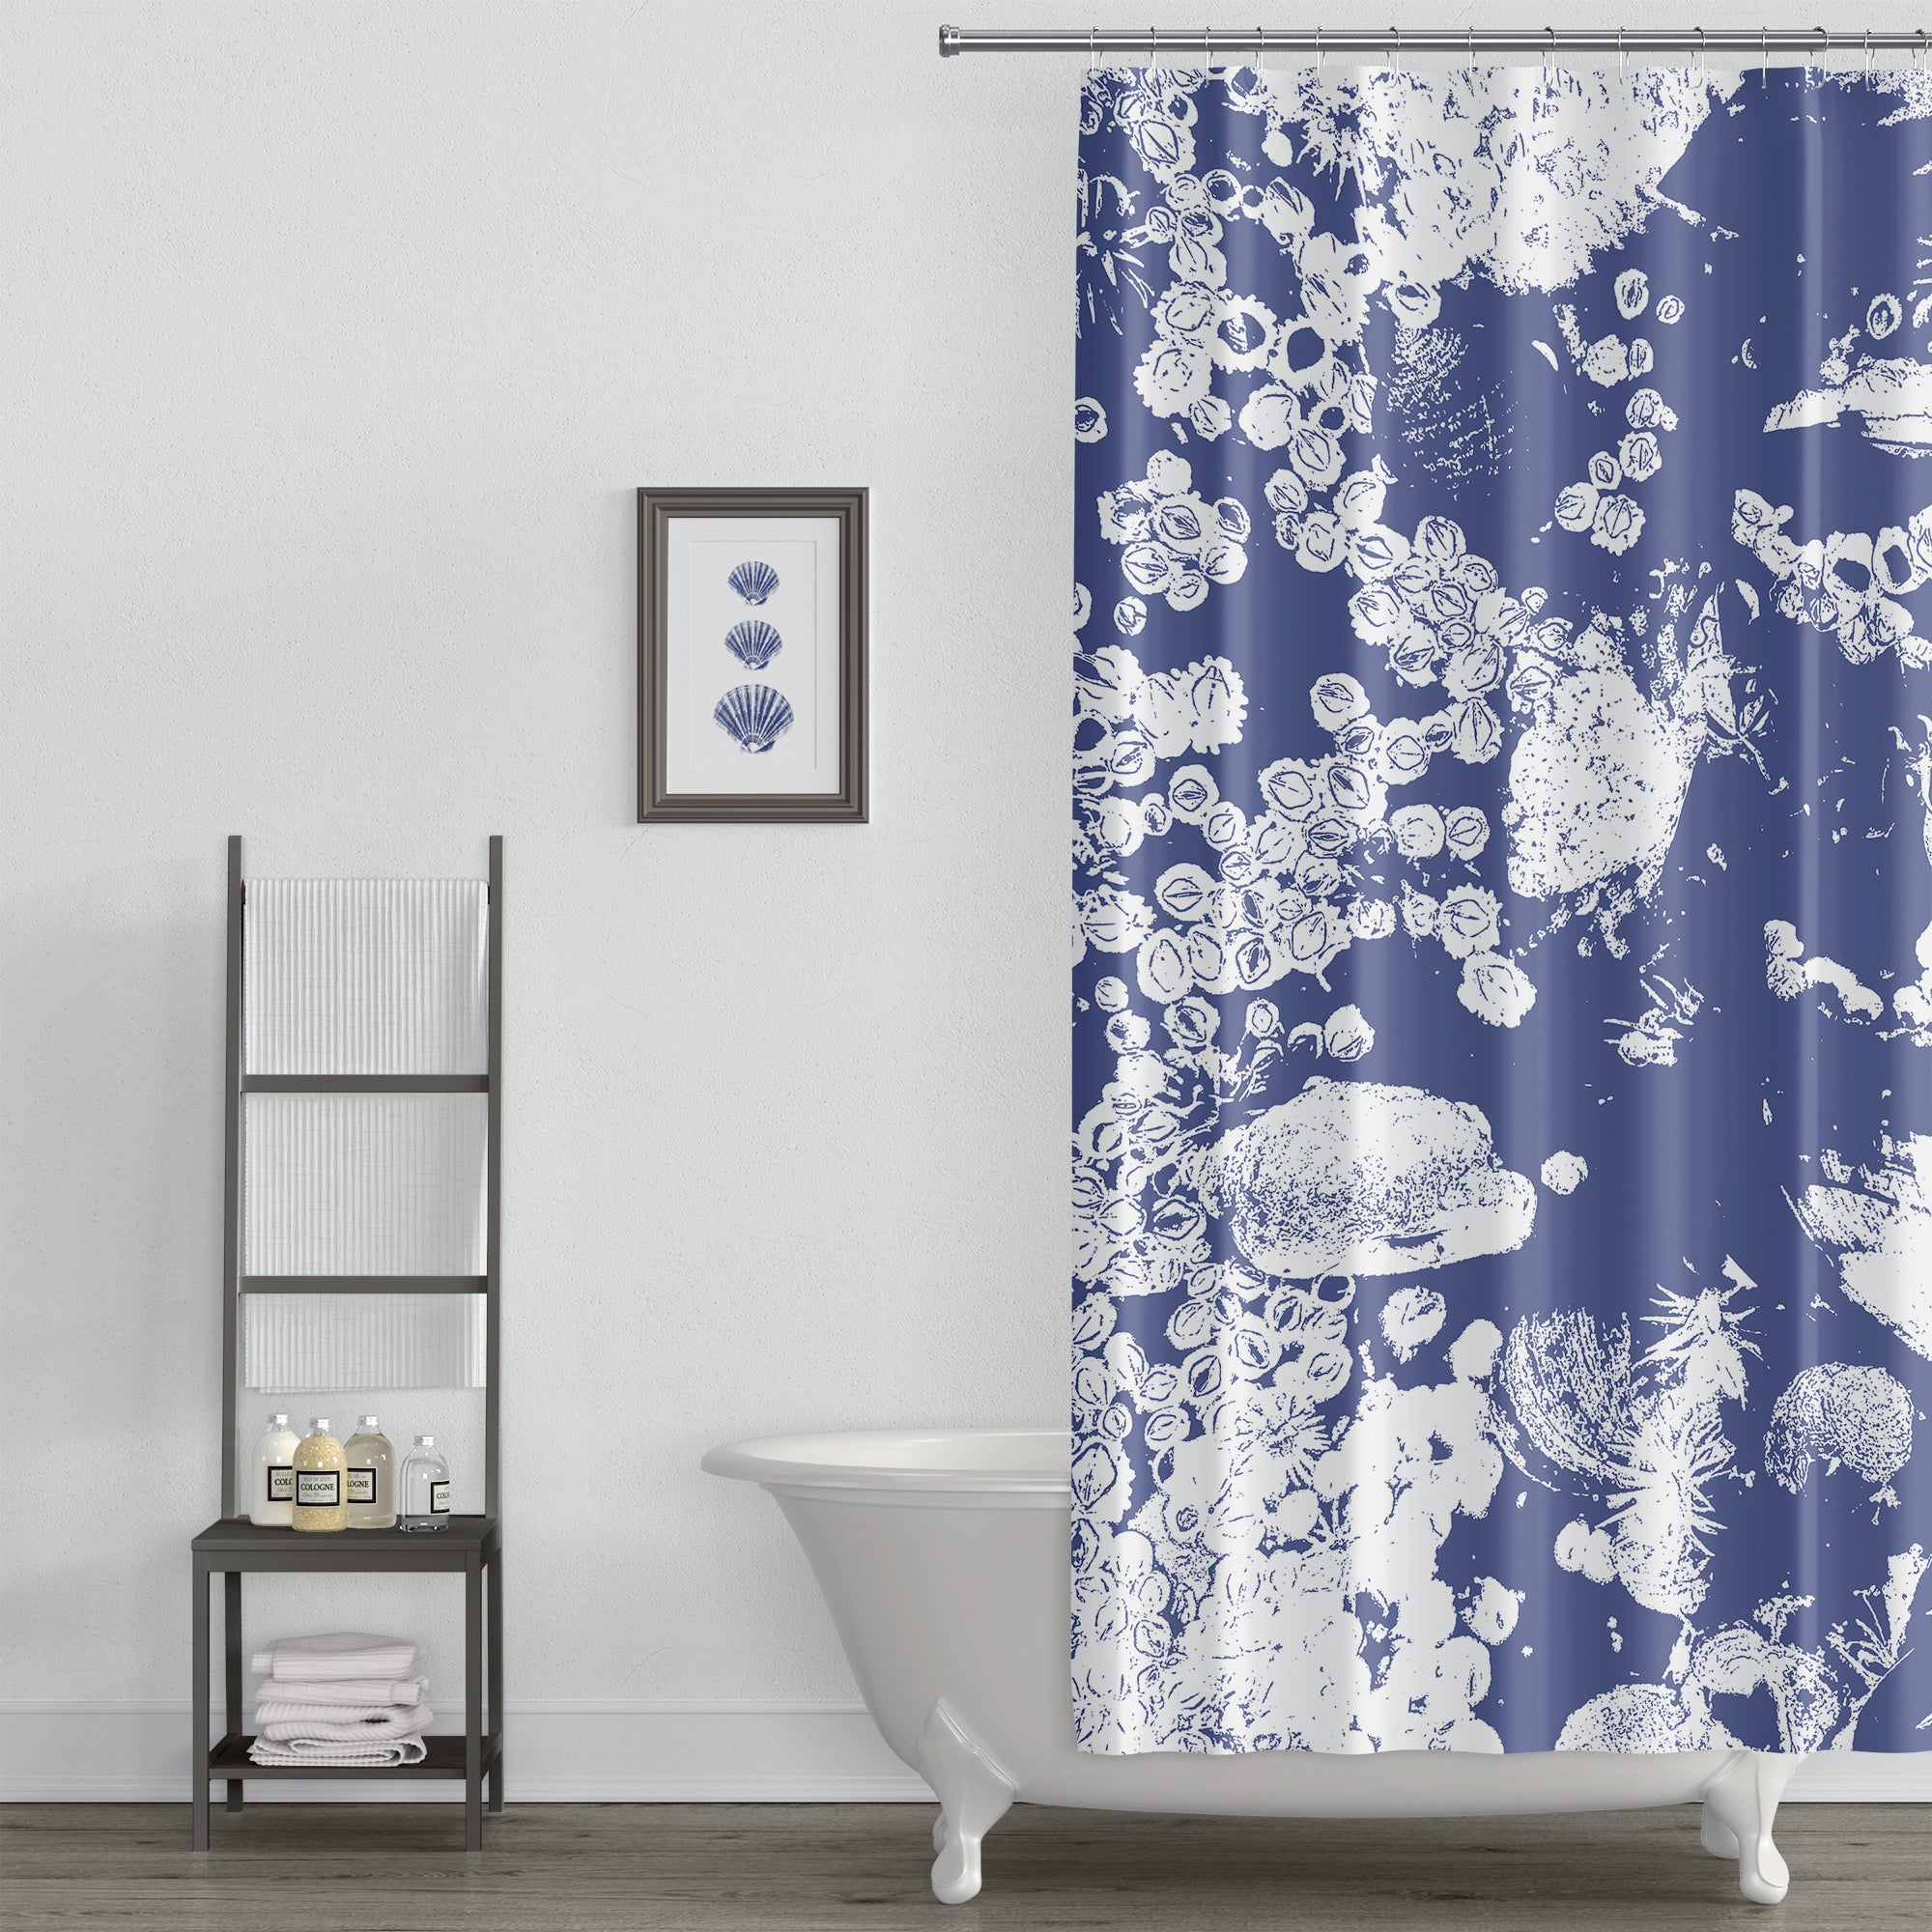 Cobalt Blue and White Northwestern Tidepool Shower Curtain, Large-Scale Blockprint Style Art Print - Metro Shower Curtains